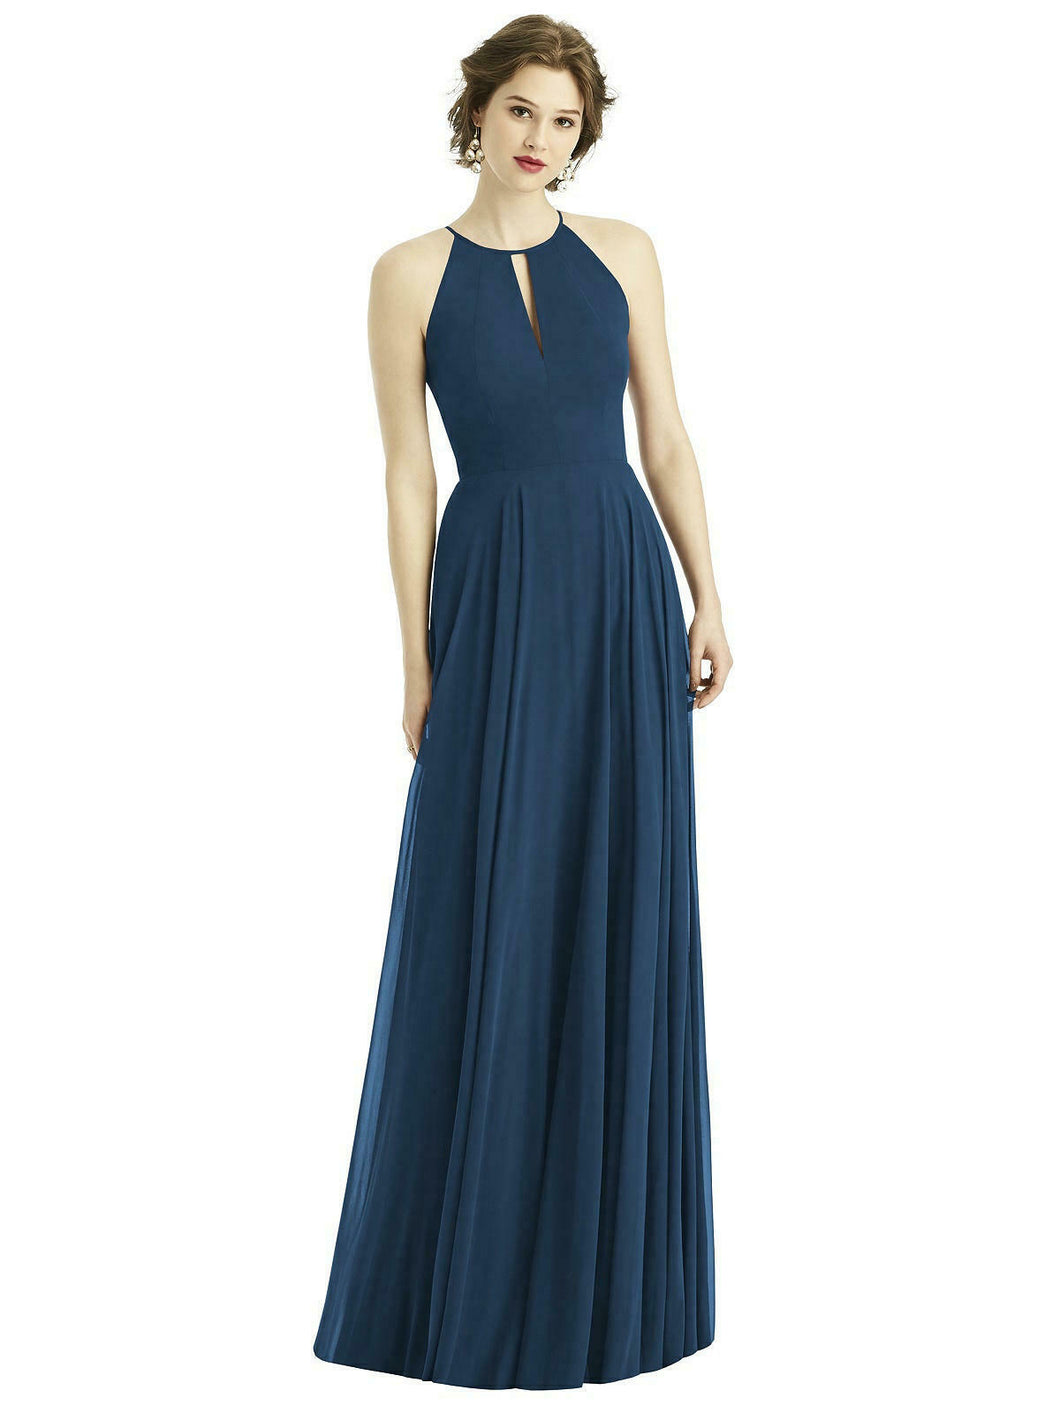 Dark Navy blue  long halter neck bridesmaid evening prom wedding bridal dress Loulous Bridal Boutique Ltd UK